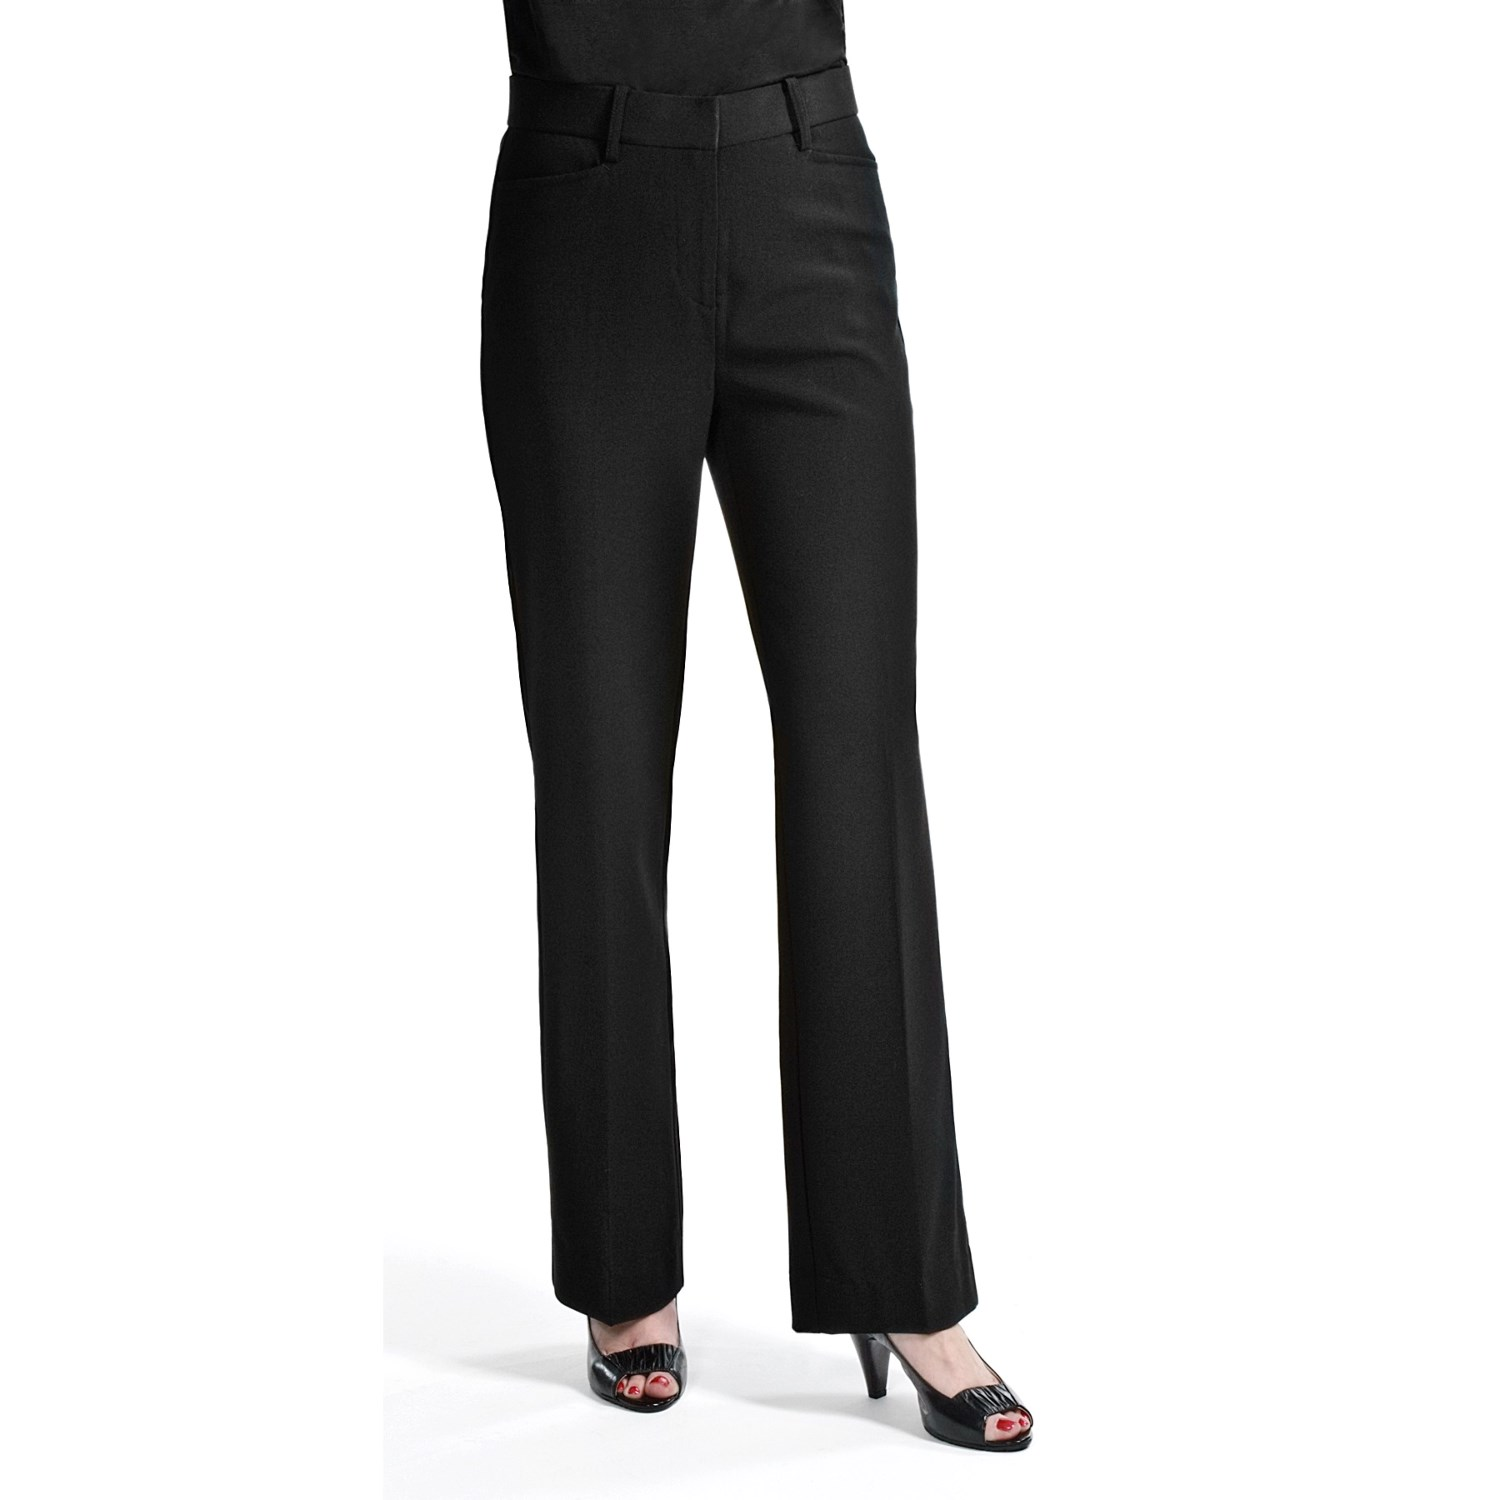 casual black pants for women photo - 1